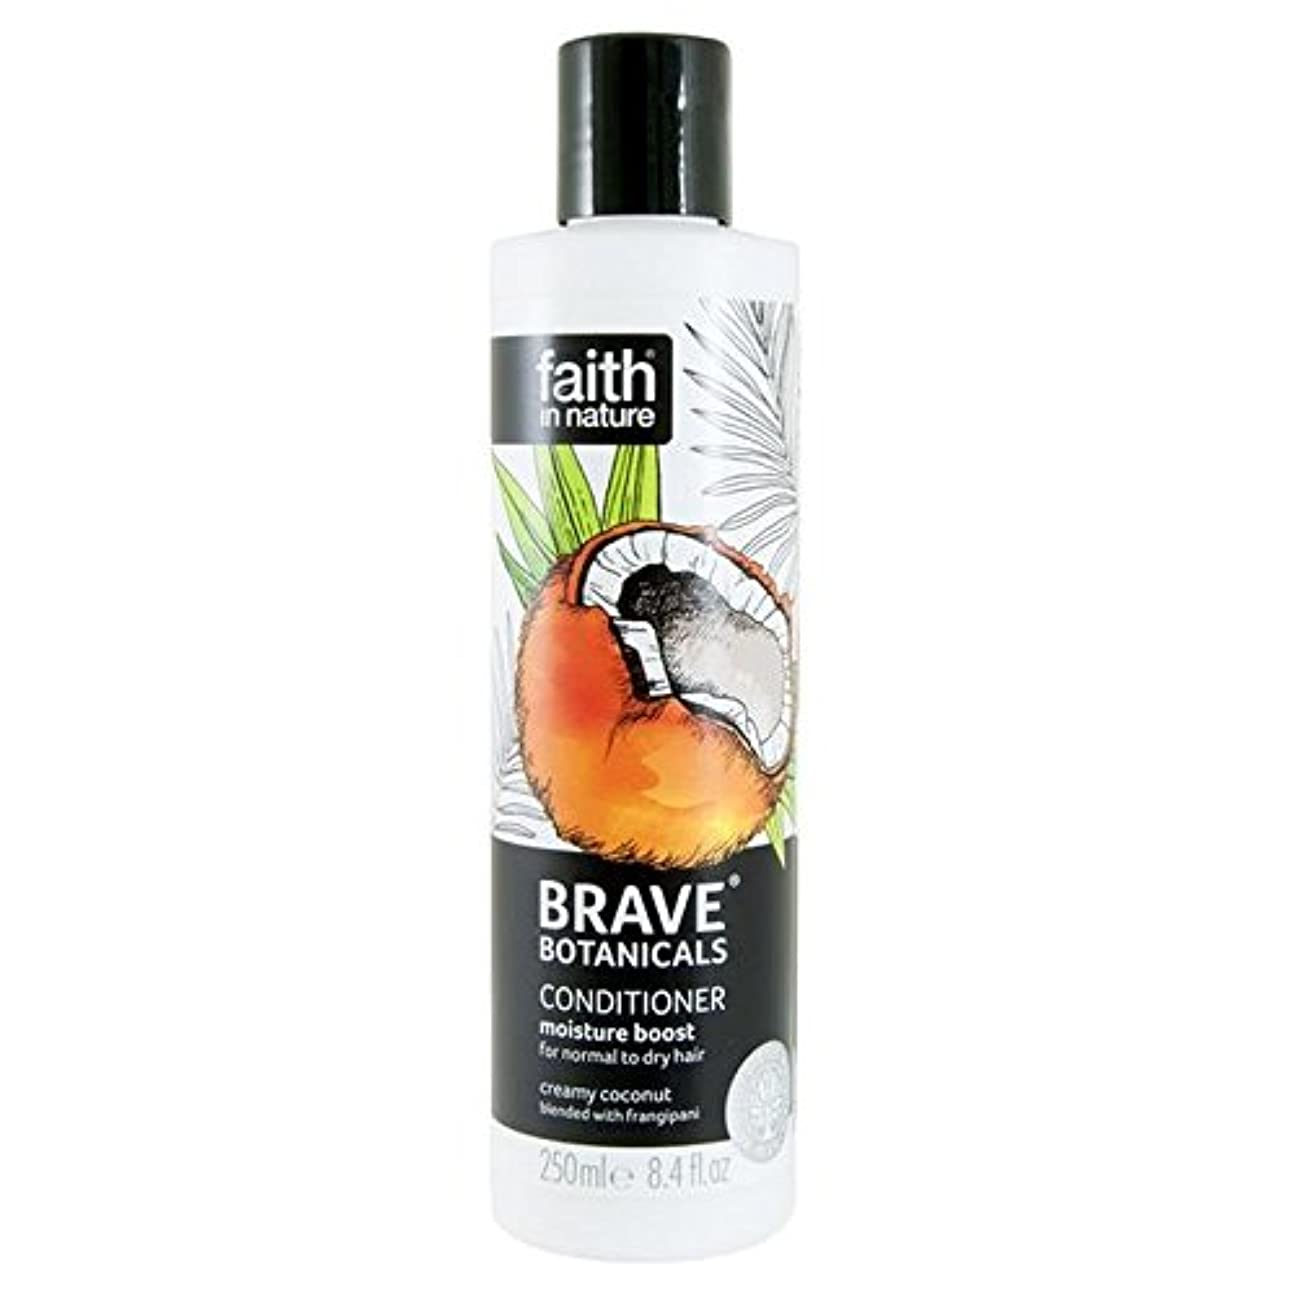 謎めいた洗練された捕虜Brave Botanicals Coconut & Frangipani Moisture Boost Conditioner 250ml (Pack of 4) - (Faith In Nature) 勇敢な植物ココナッツ...